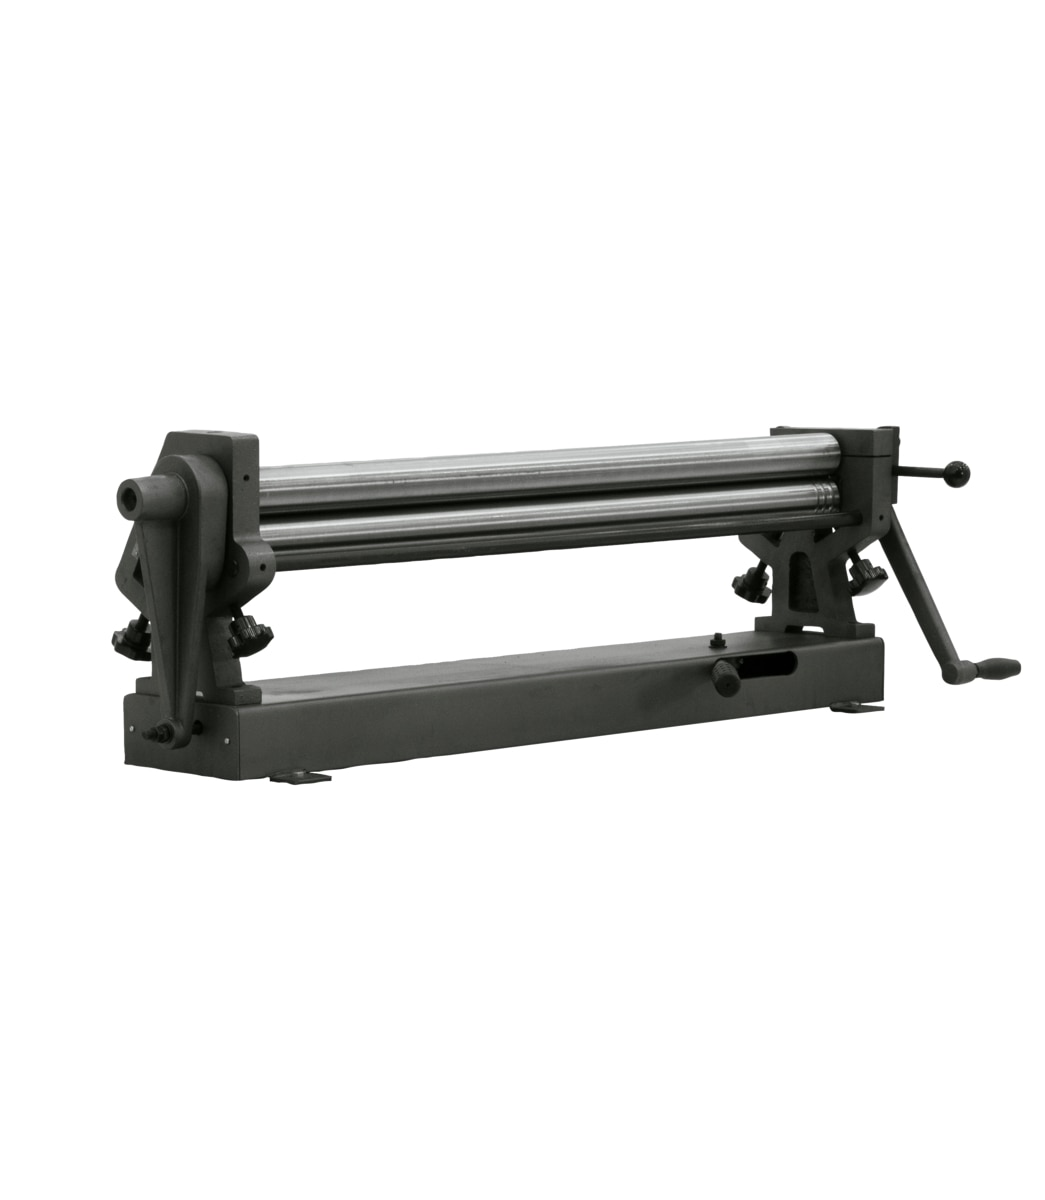 "SR-2236M, 36"" x 22 Gauge Bench Model Slip Roll"